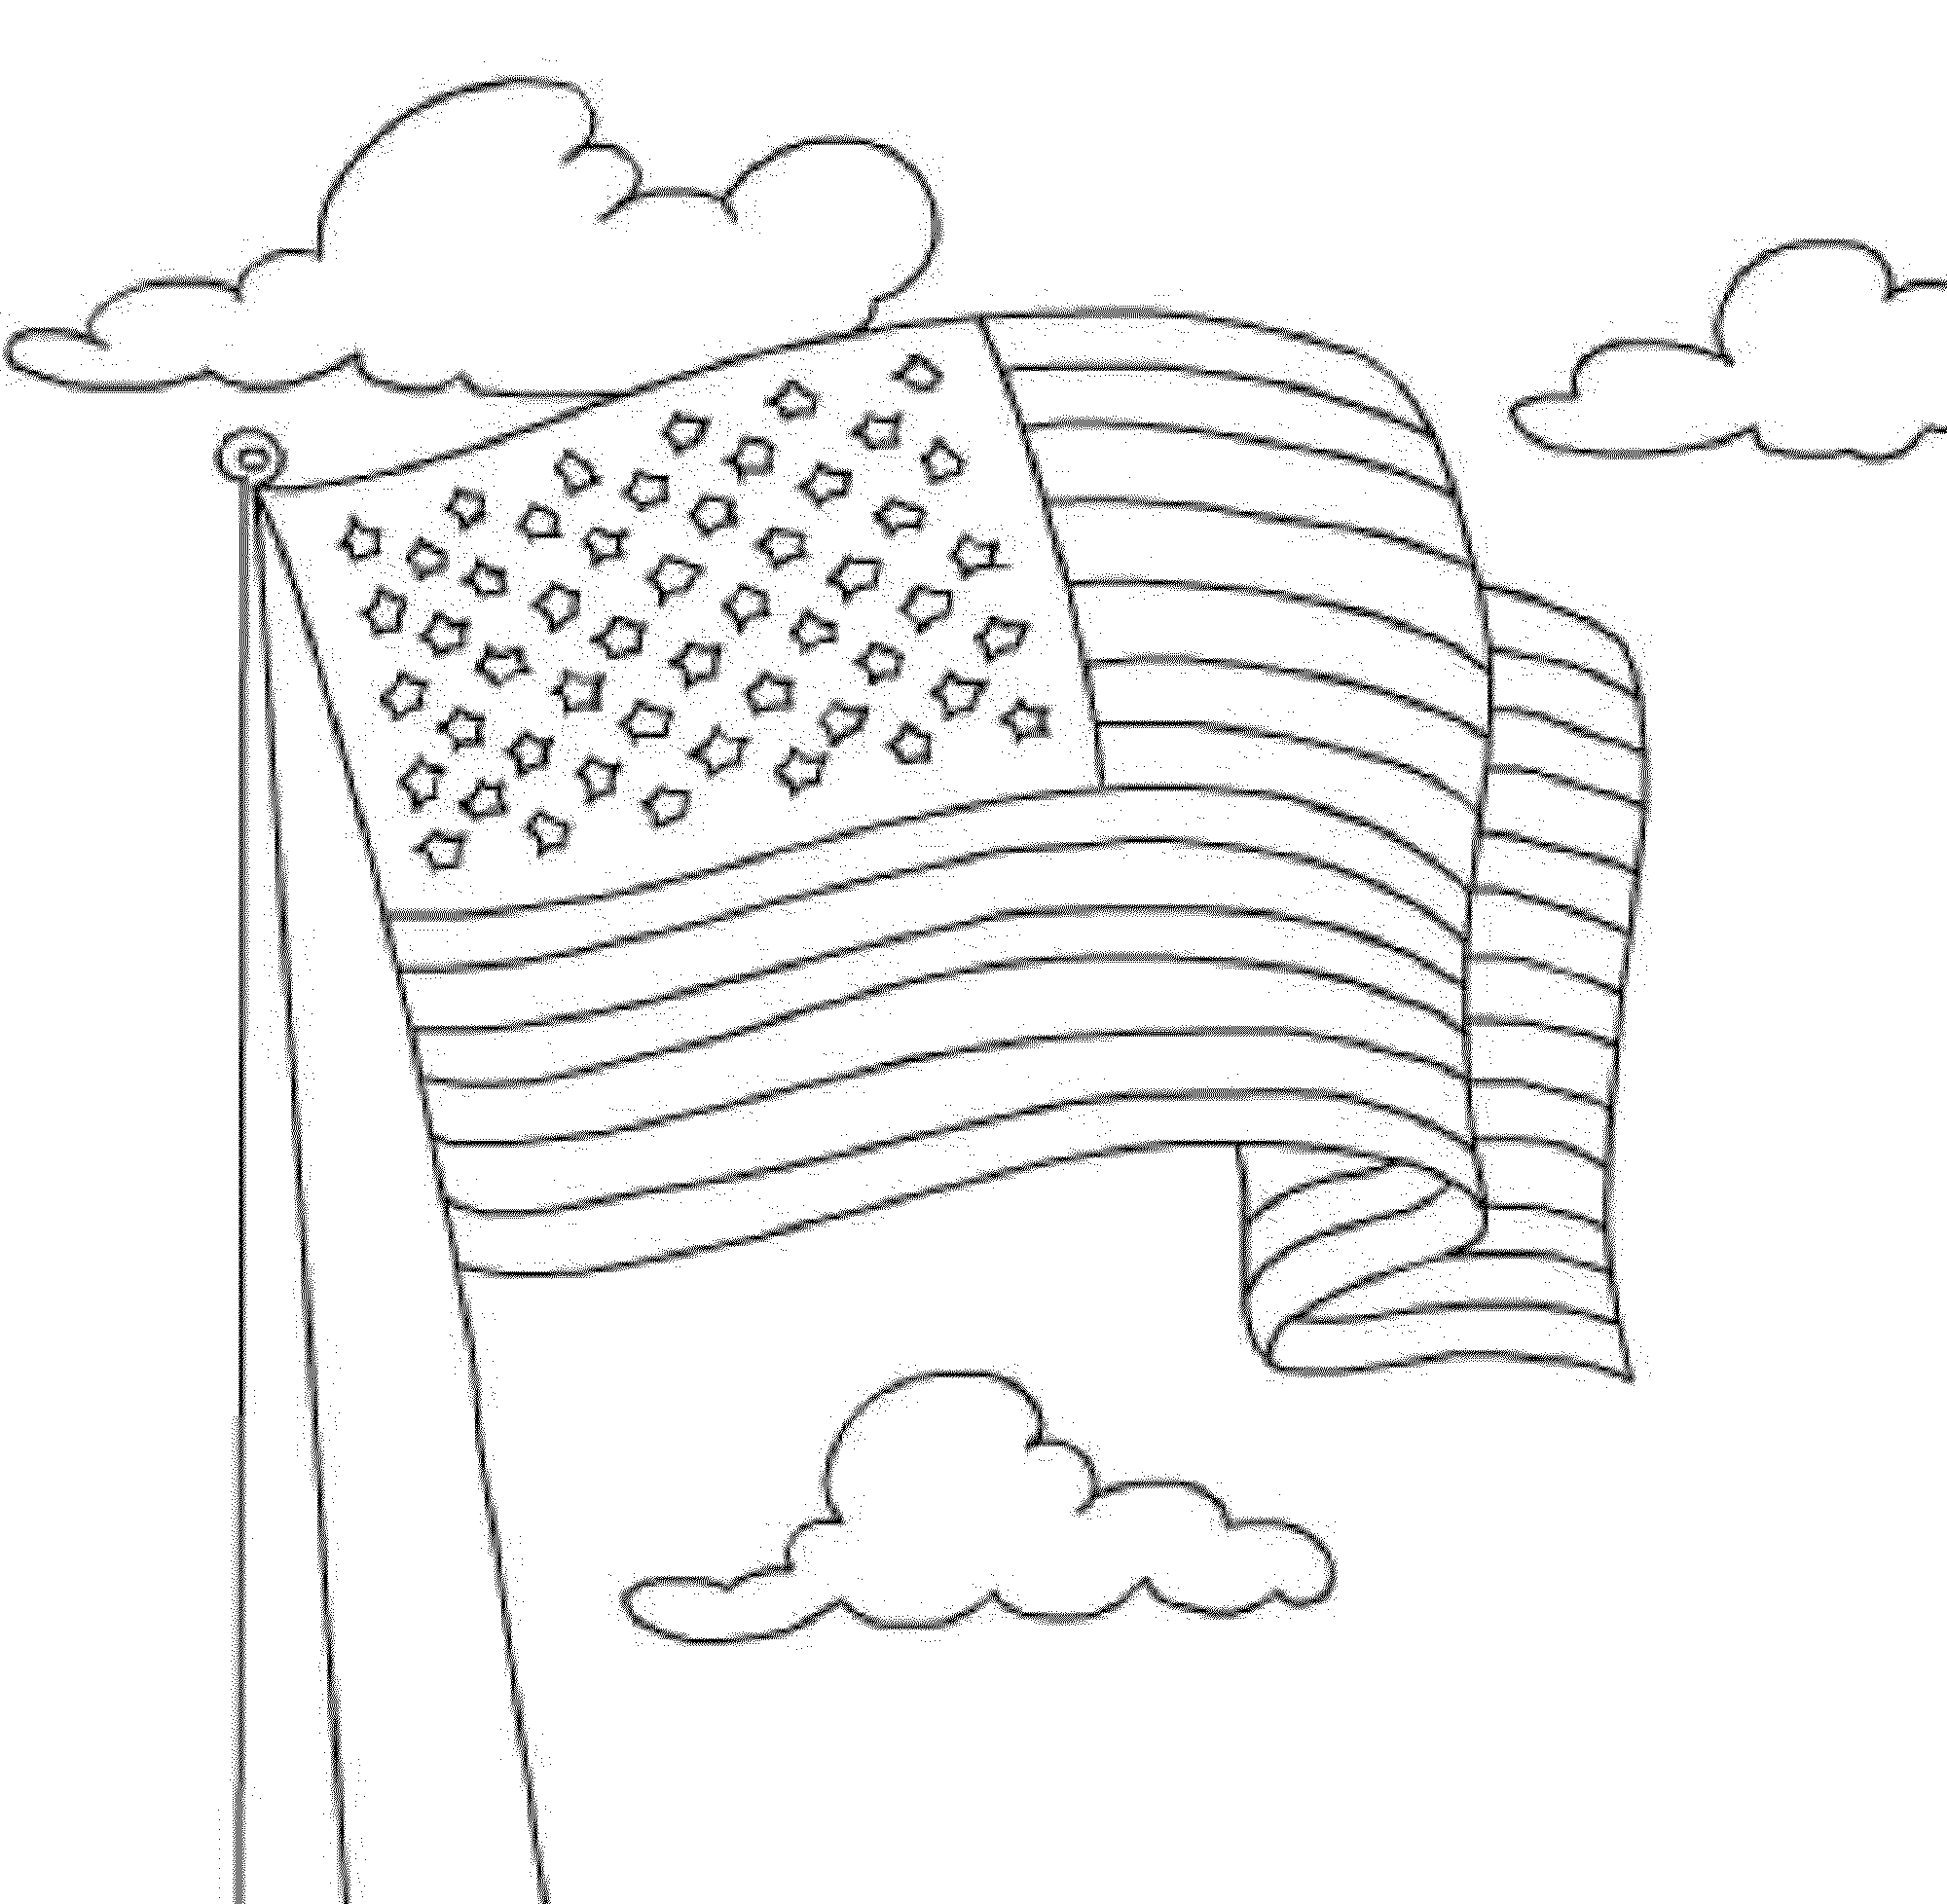 small american flag coloring page american flag coloring page for the love of the country flag small page american coloring